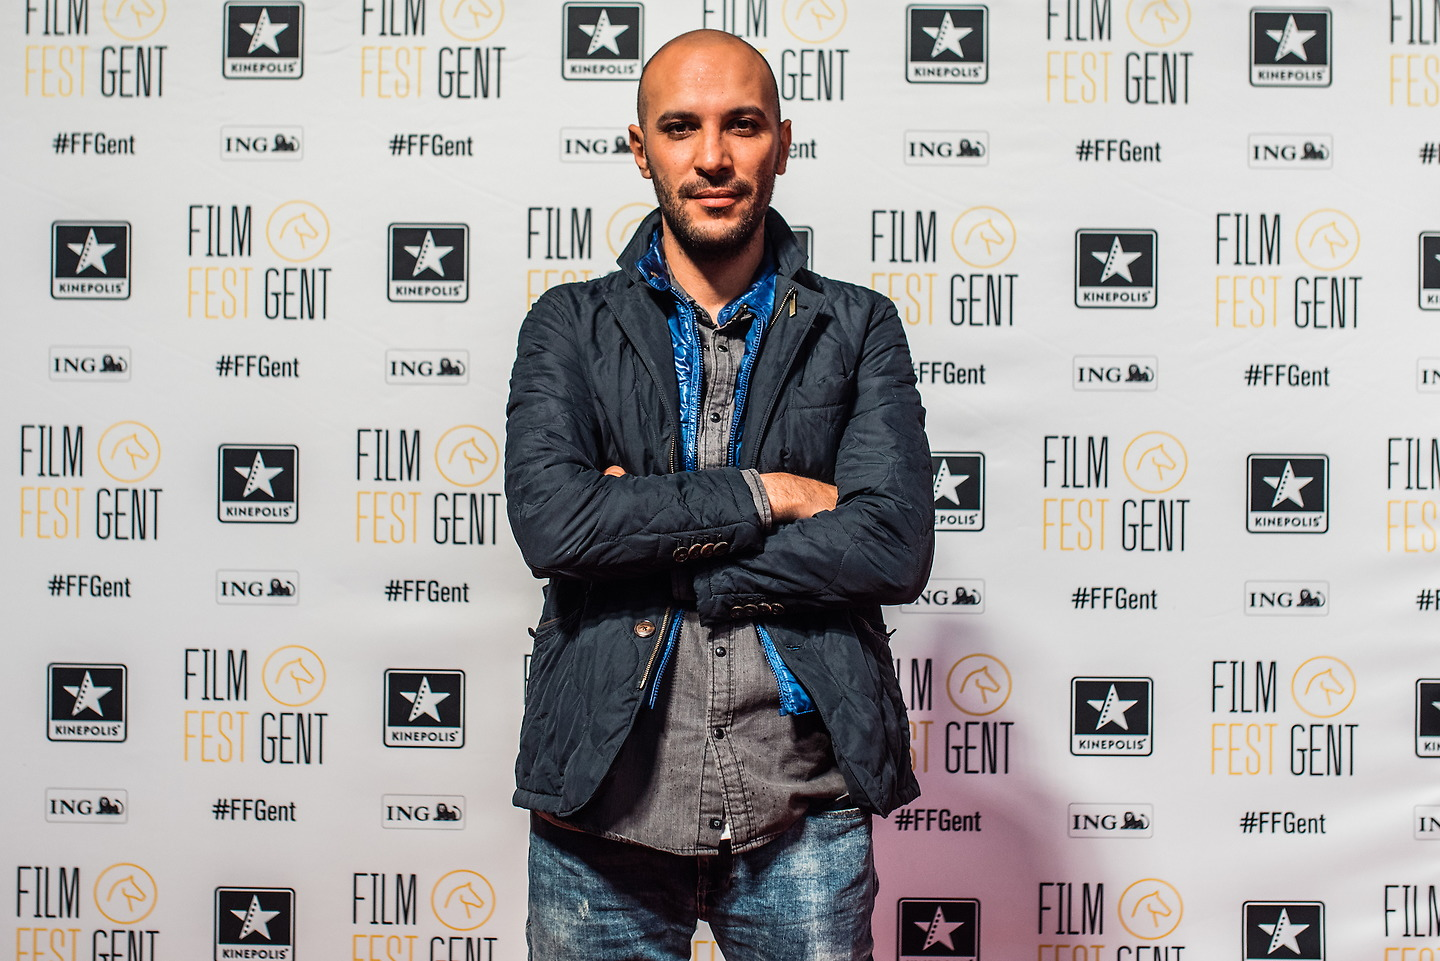 Film Fest Gent - Clash - Mohamed Diab